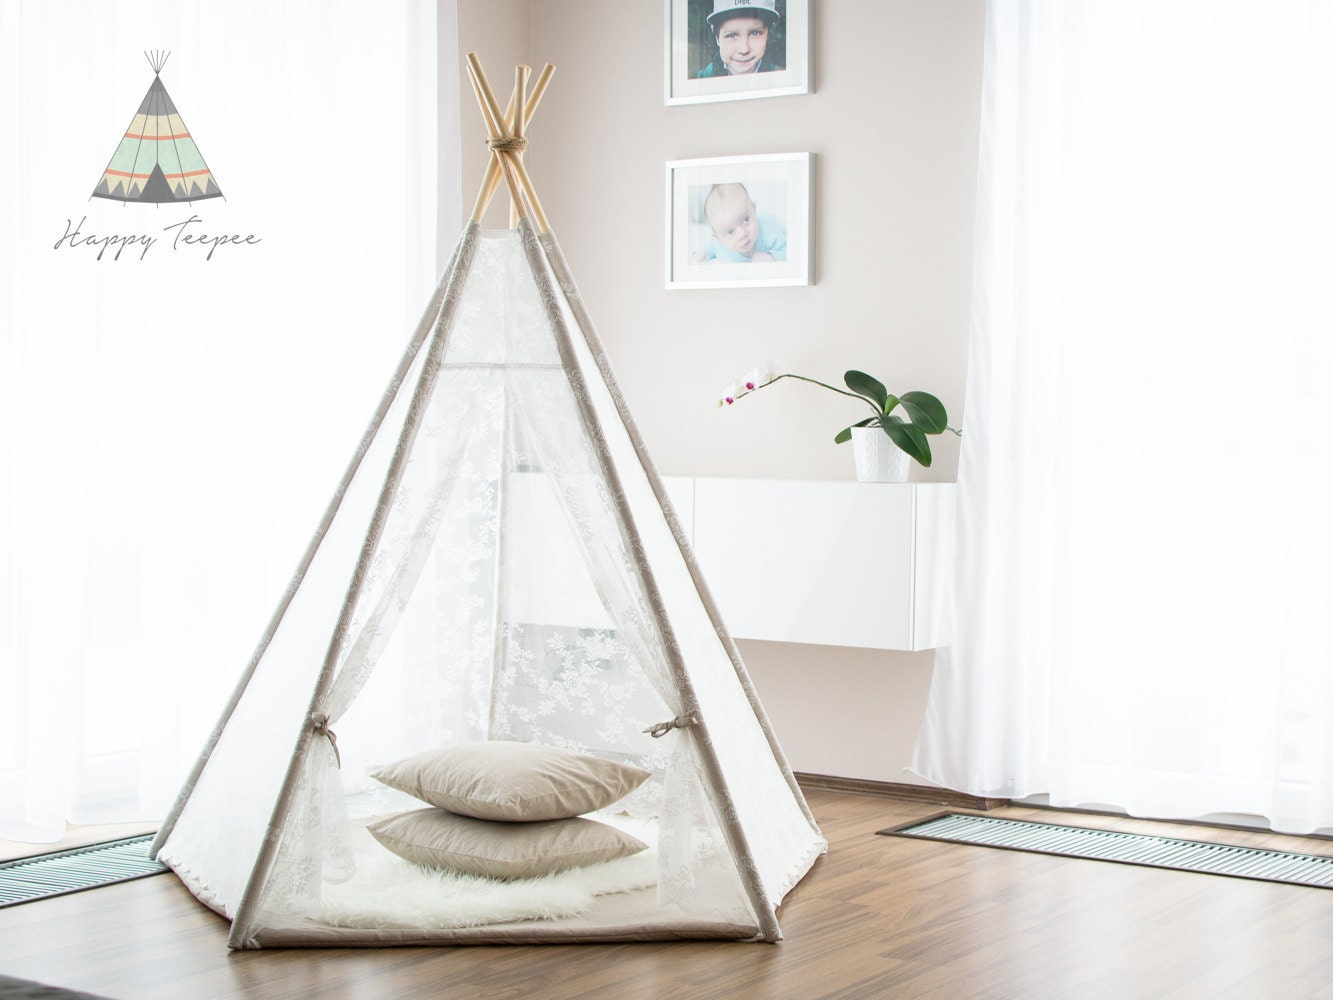 tipi romantique ensemble de tipi et tipi indien mat fait. Black Bedroom Furniture Sets. Home Design Ideas